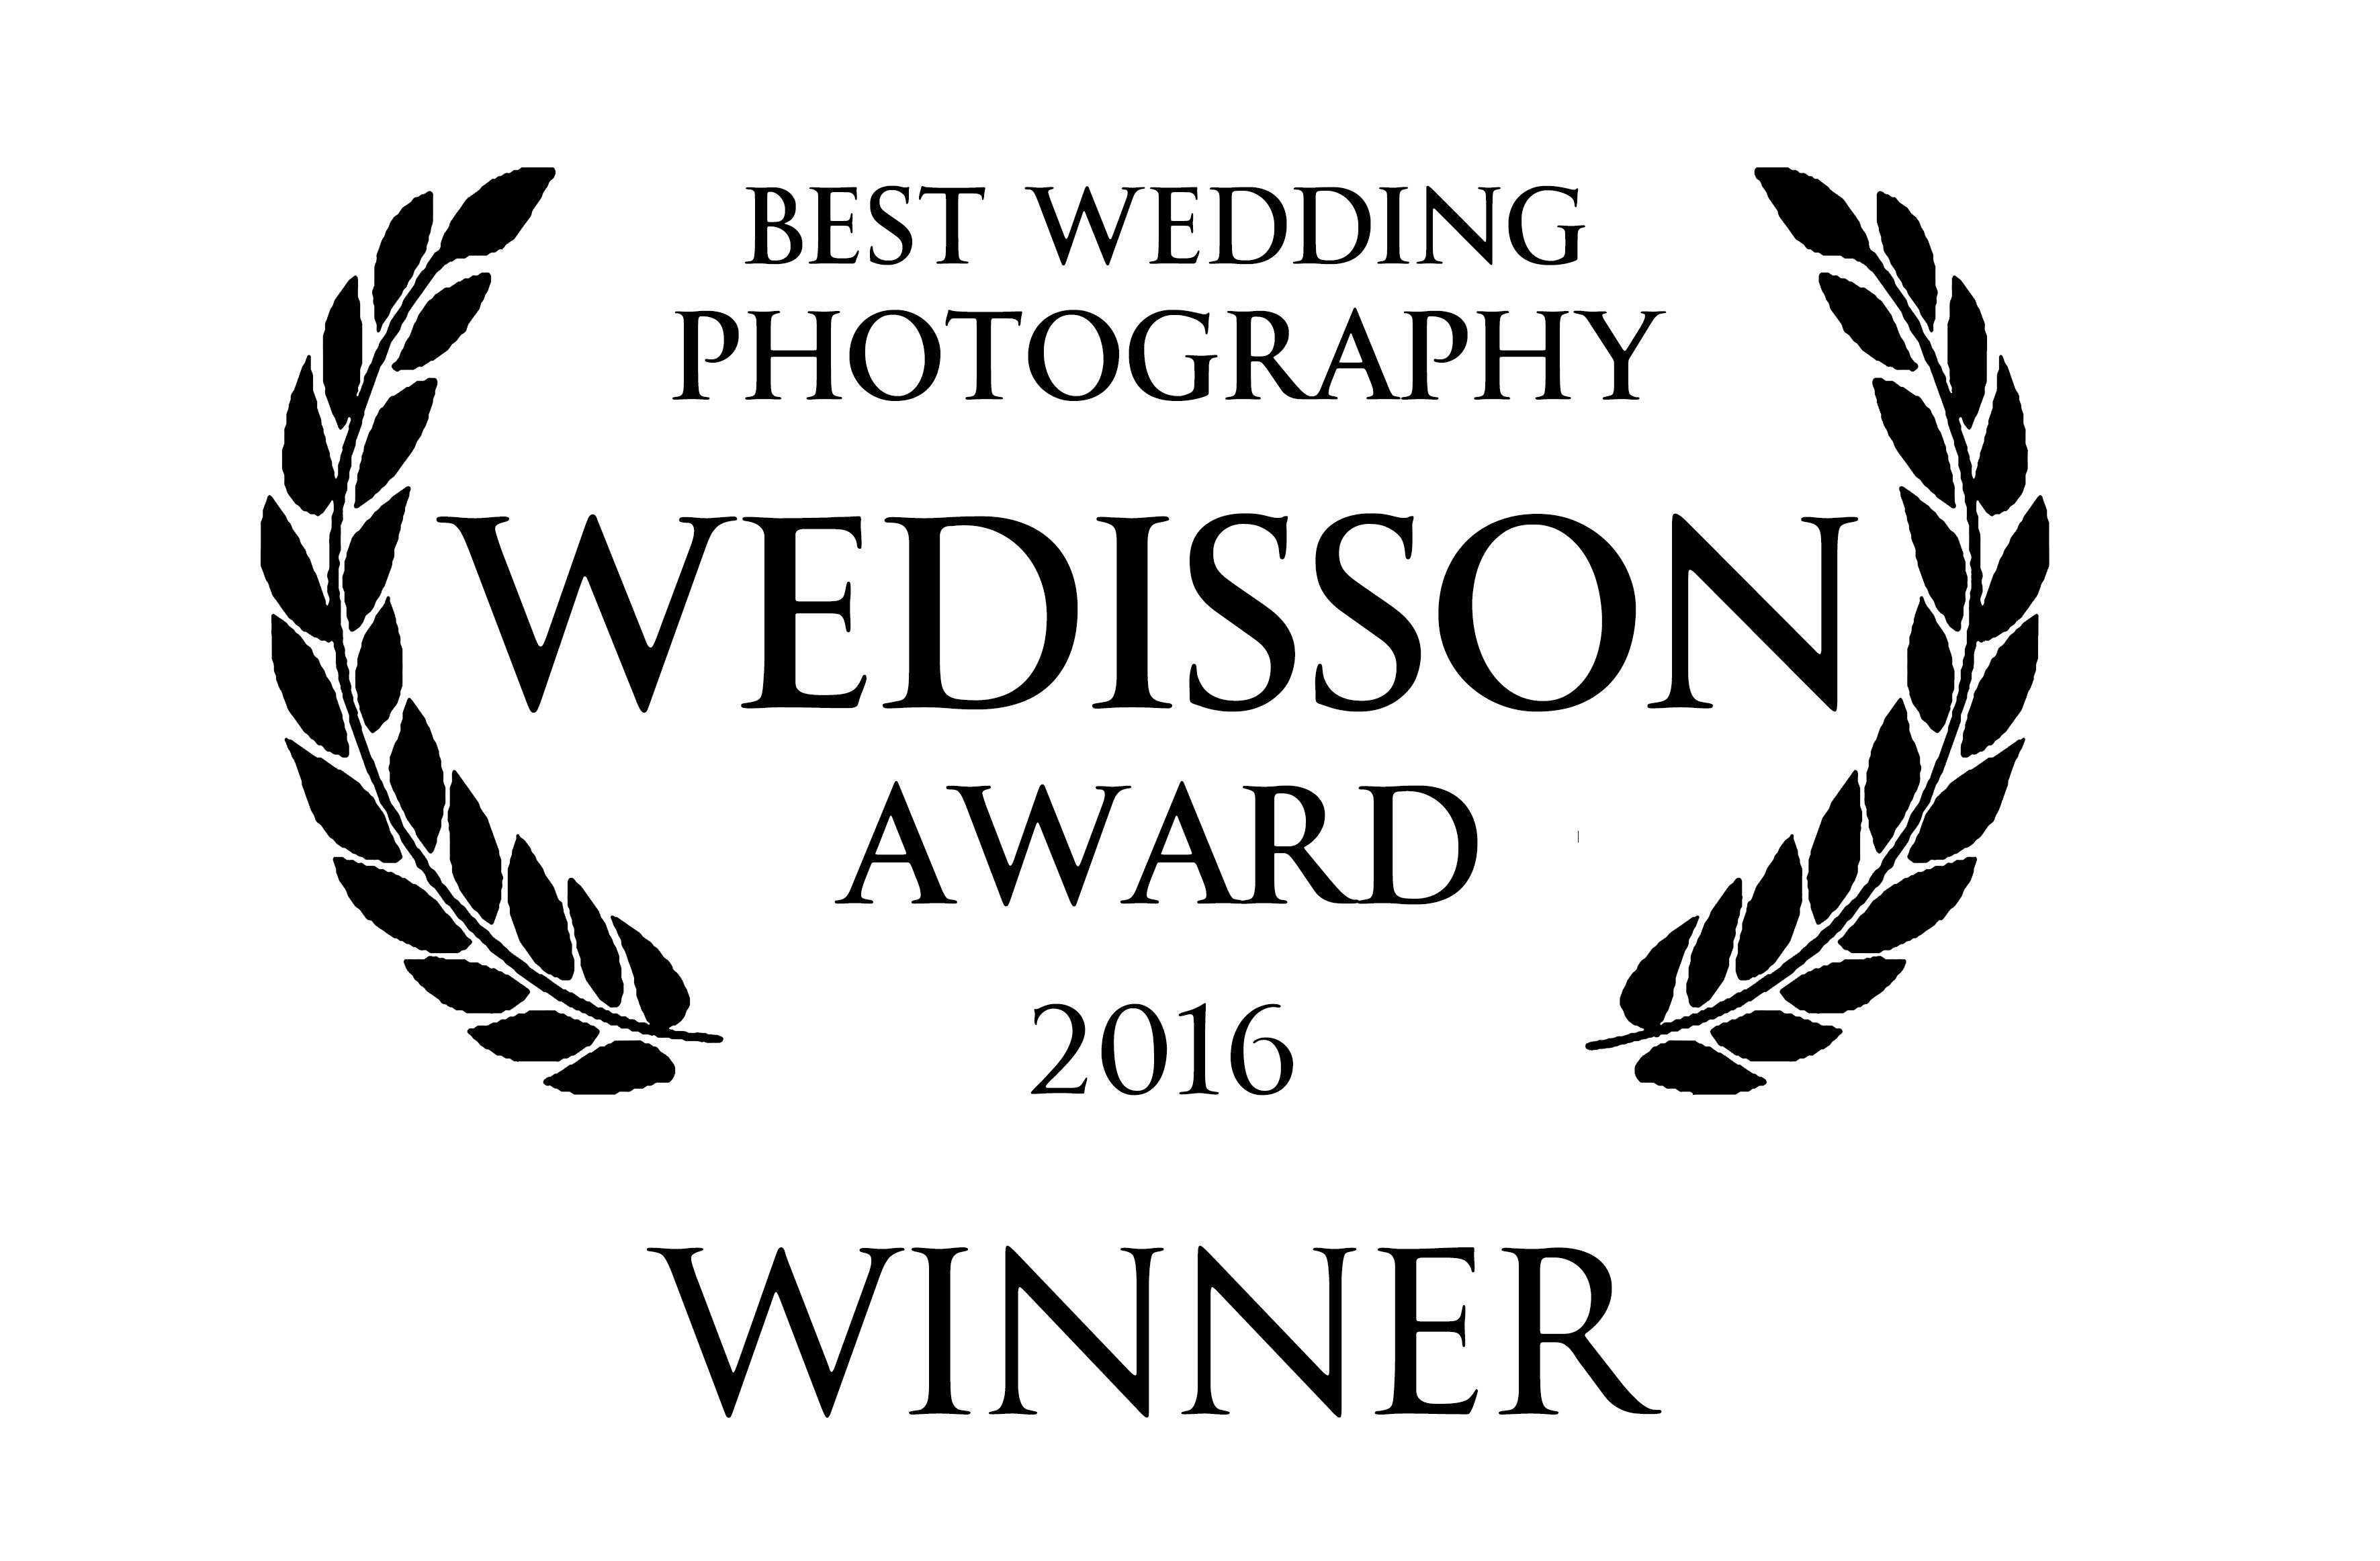 Wedisson Award